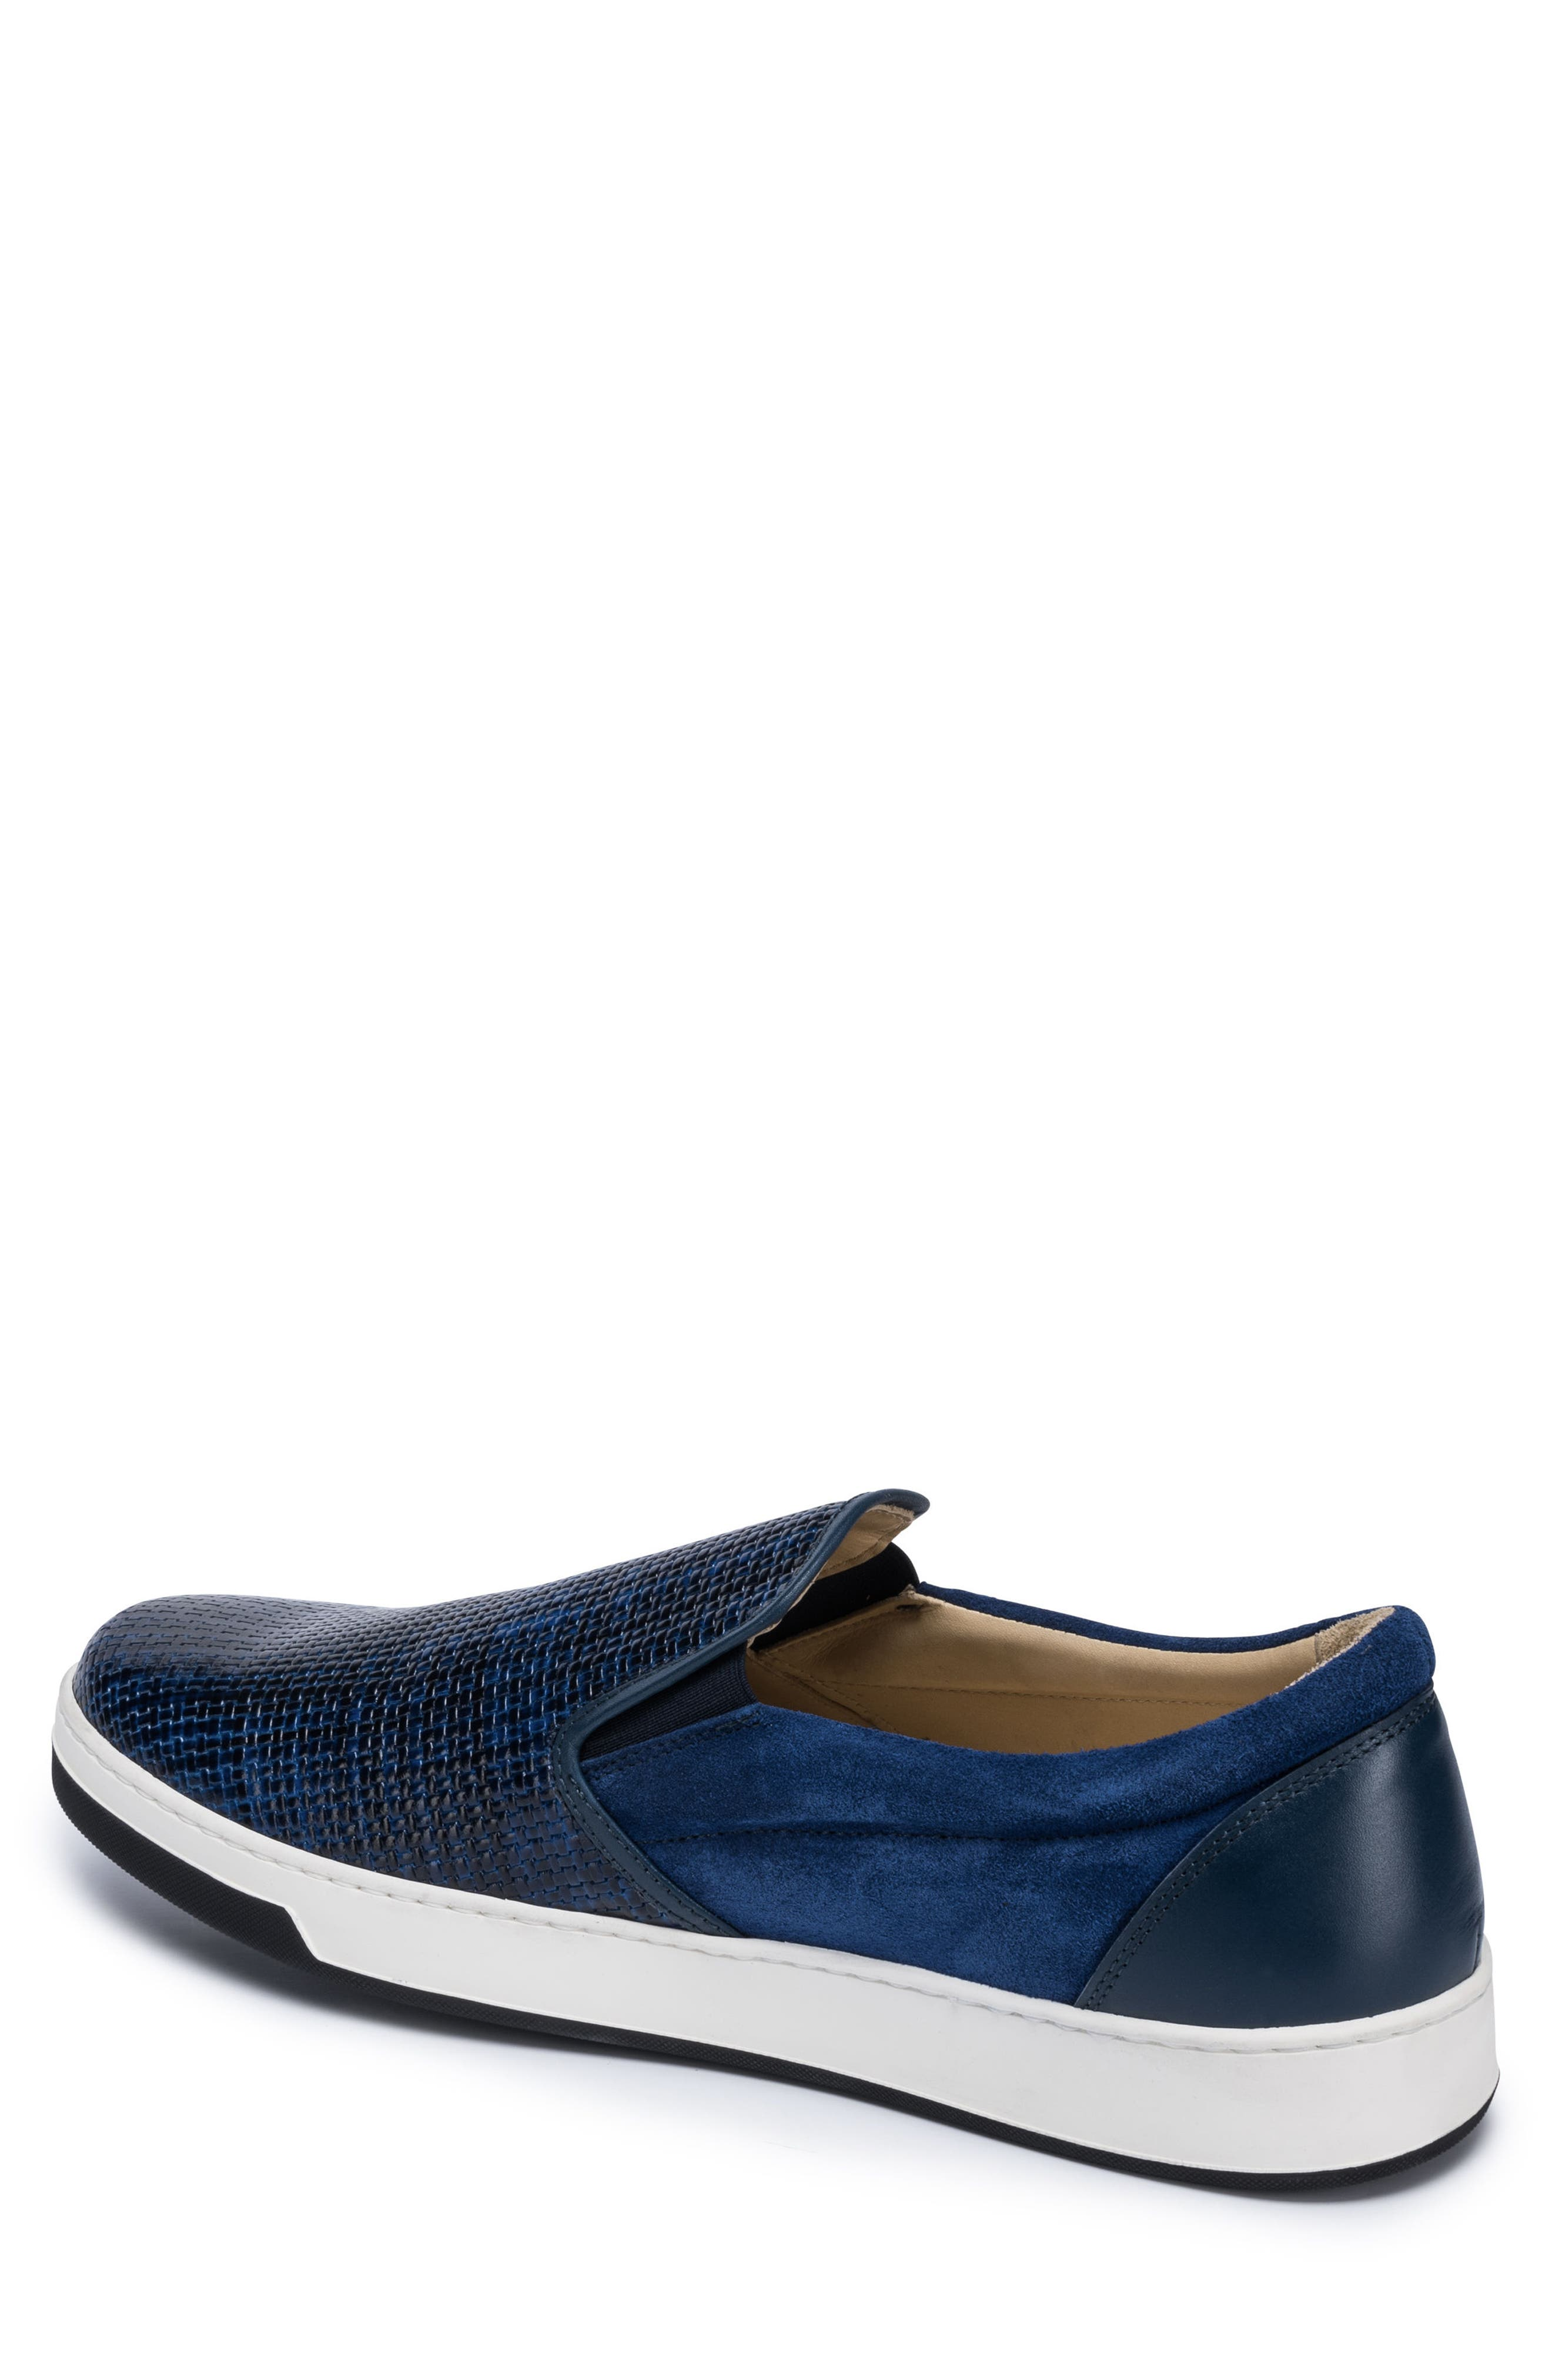 Cinque Terre Woven Slip-On Sneaker,                             Alternate thumbnail 2, color,                             Blue Leather/ Suede